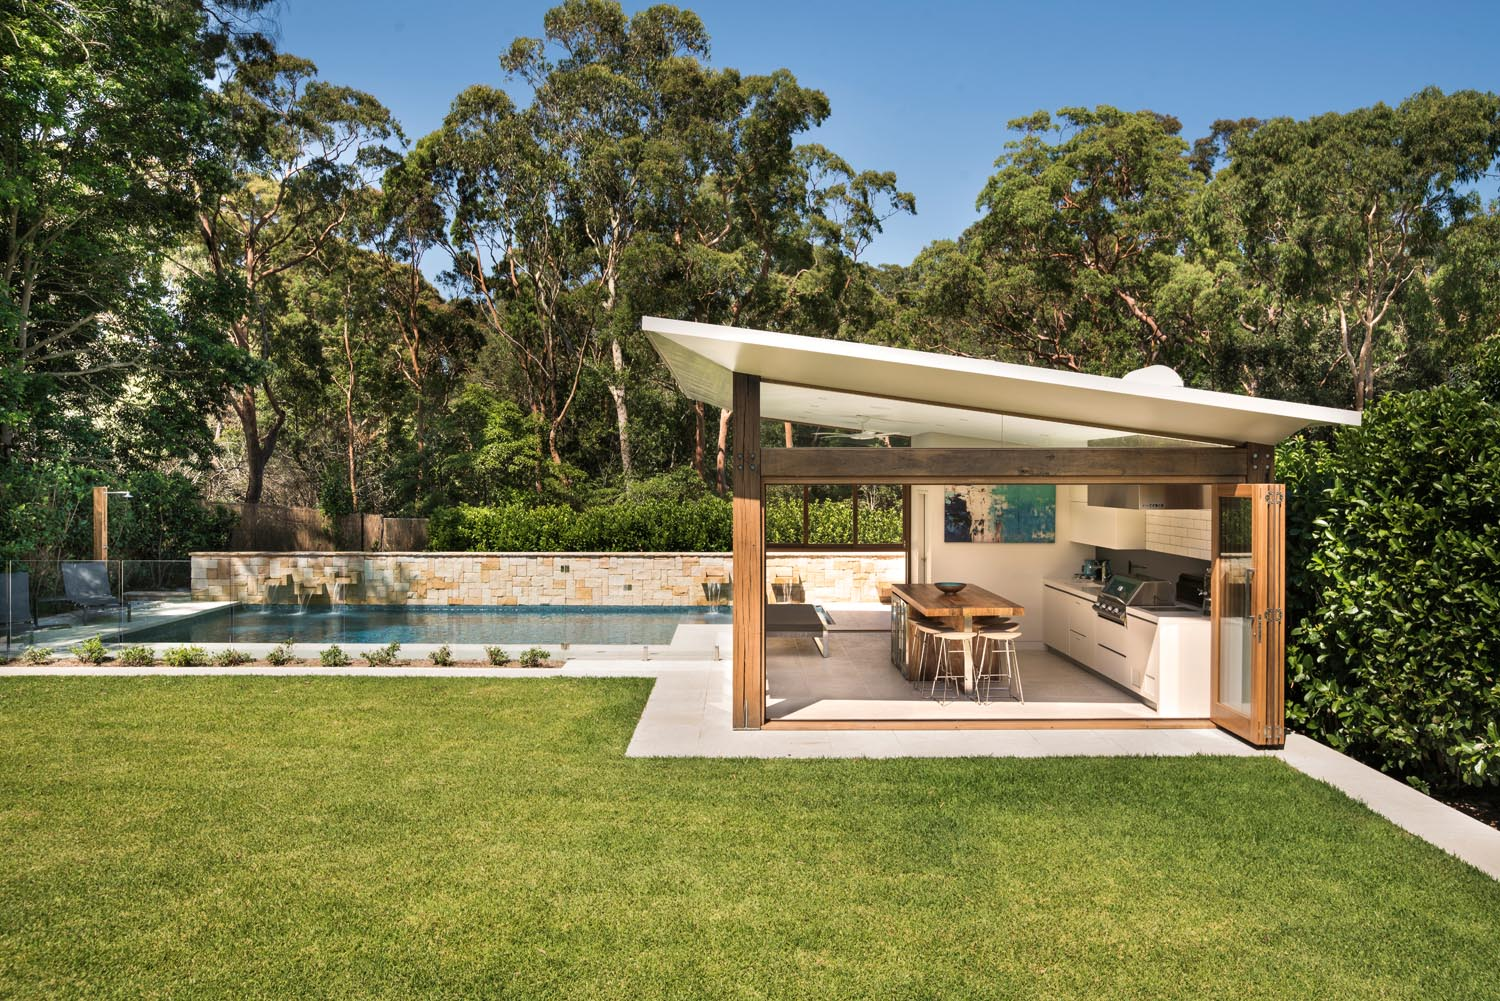 Perfect form: seamless outdoor entertaining